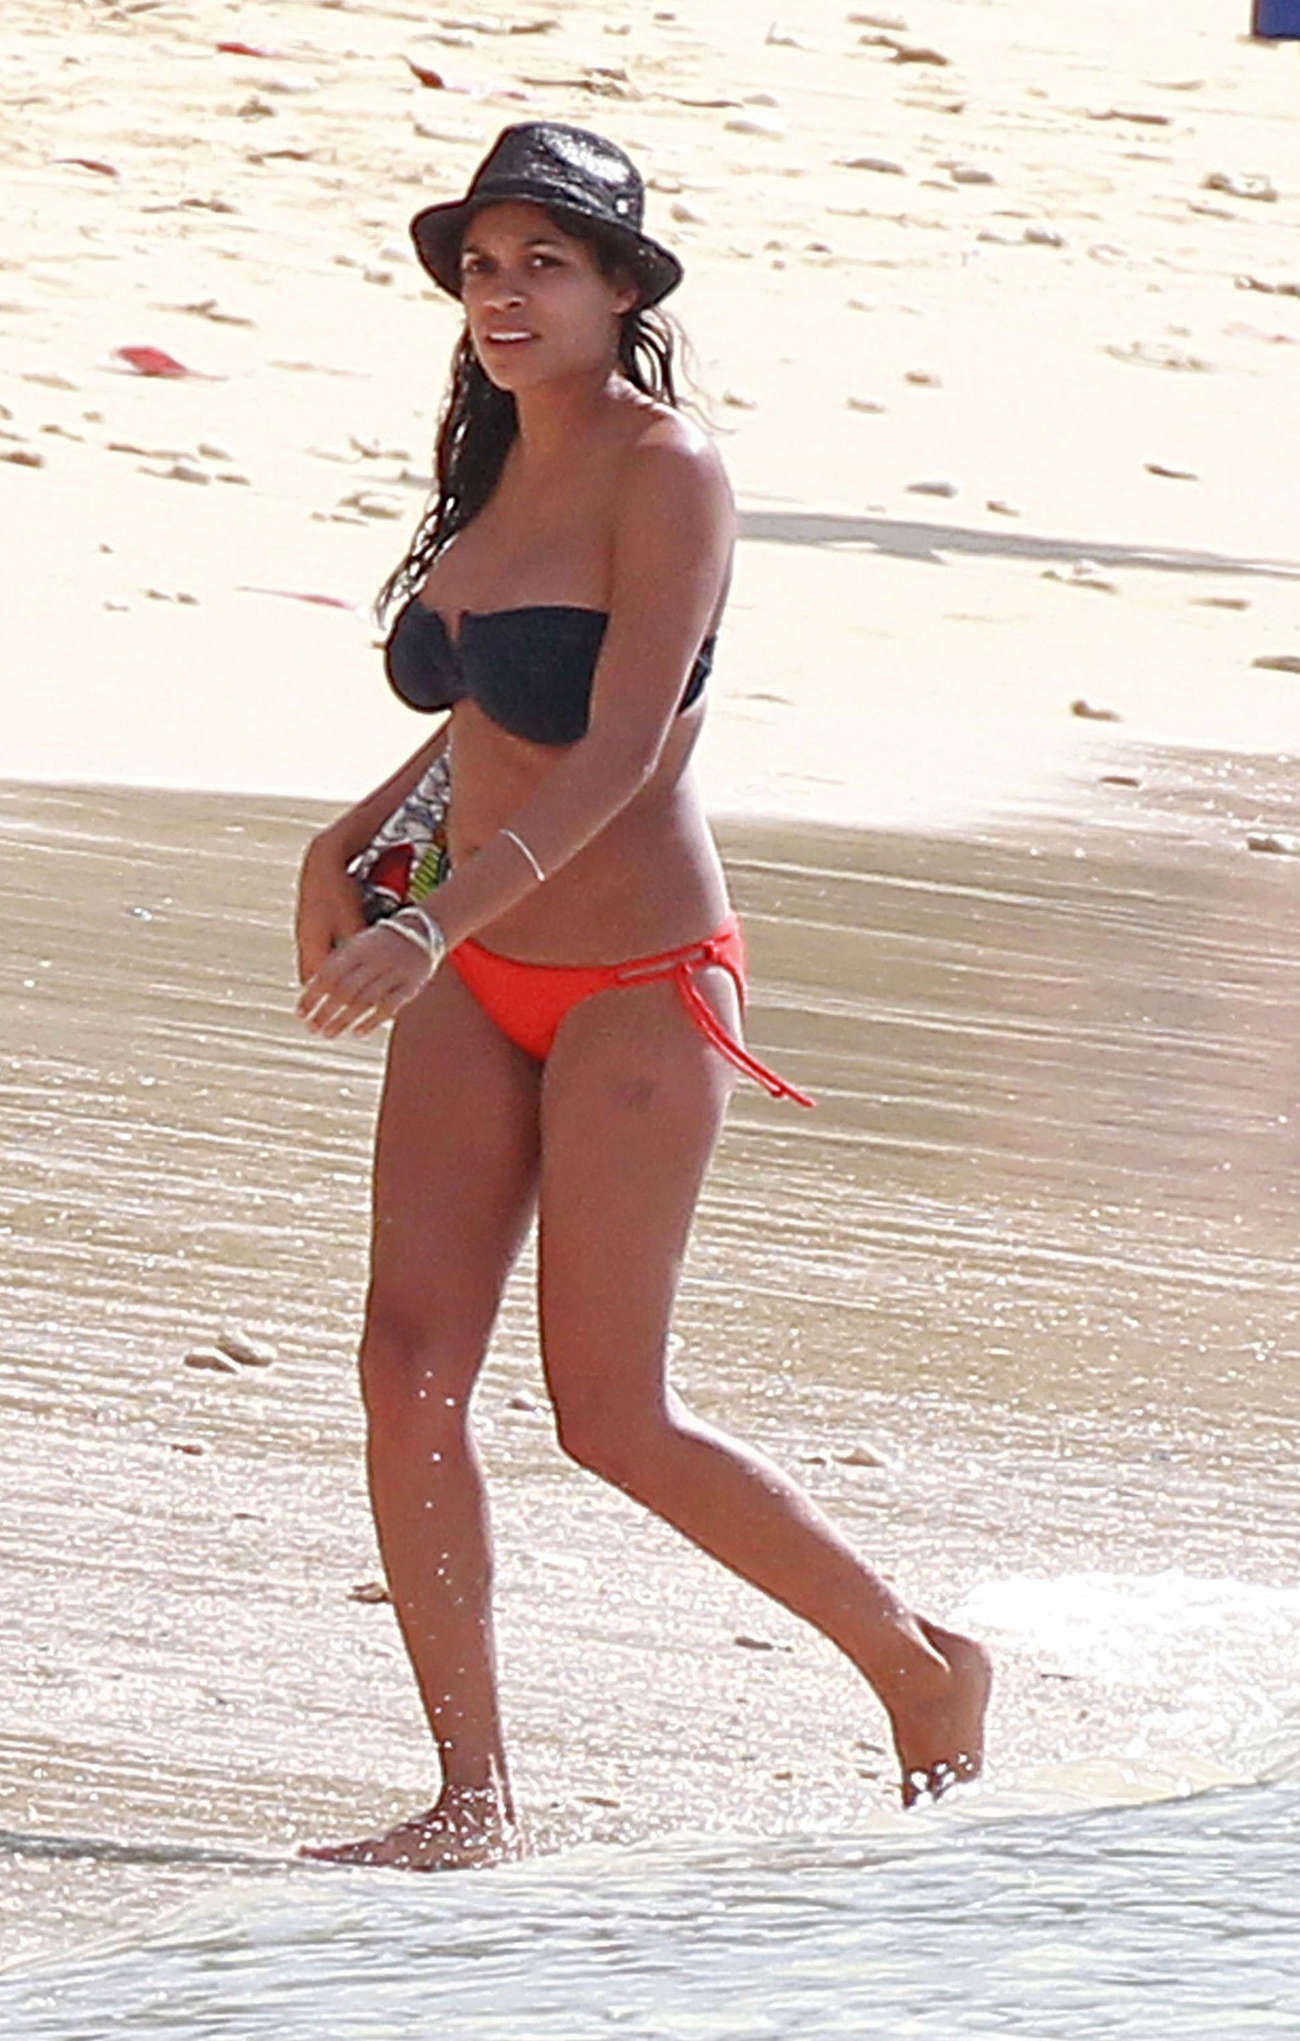 Rosario-Dawson-on-Beach-